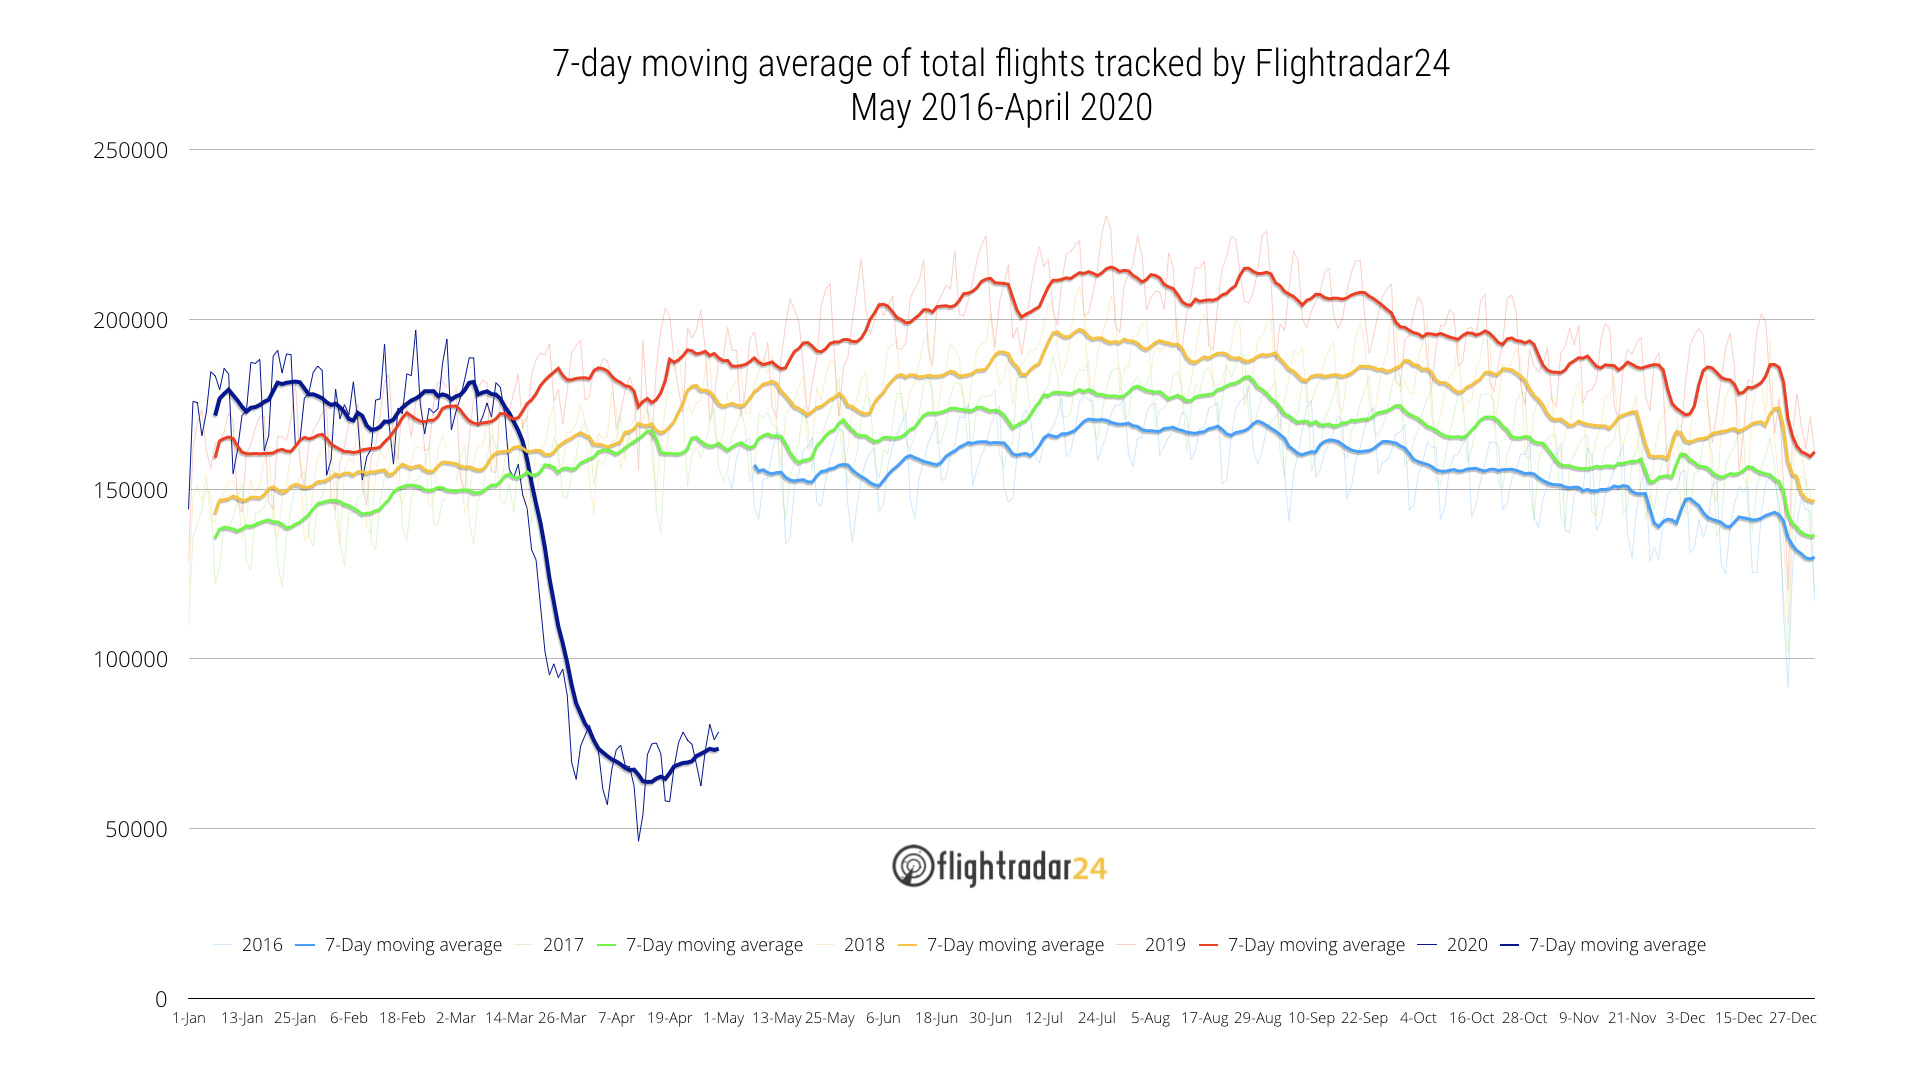 Total flights tracked May 2016 to April 2020